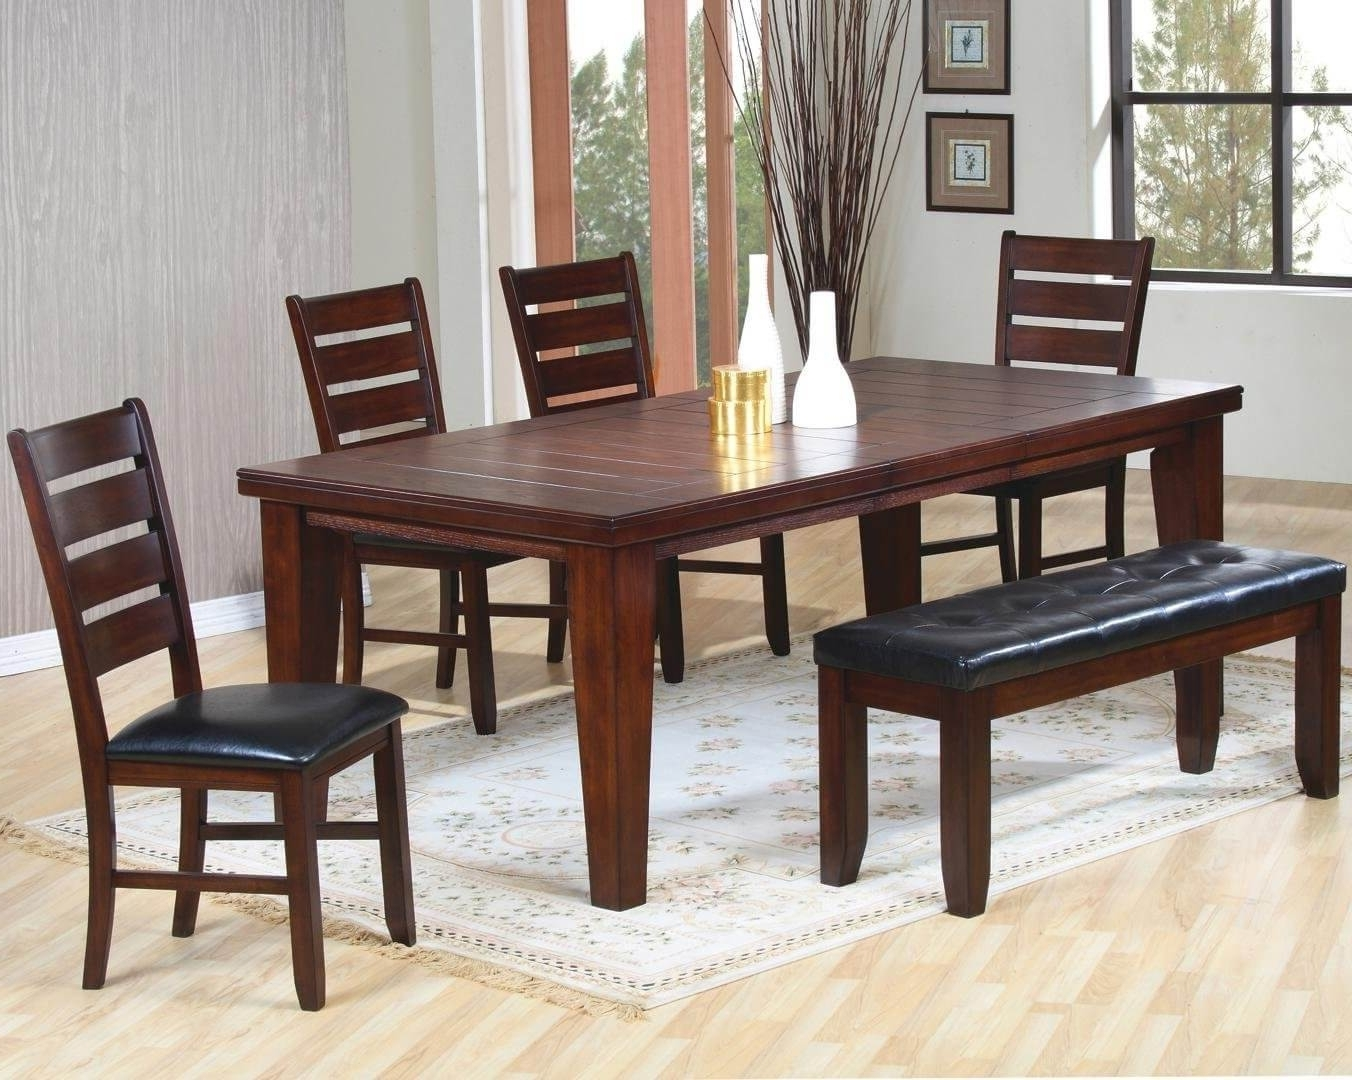 Most Recent Cheap Oak Dining Sets Inside 26 Dining Room Sets (Big And Small) With Bench Seating (2018) (Gallery 16 of 25)